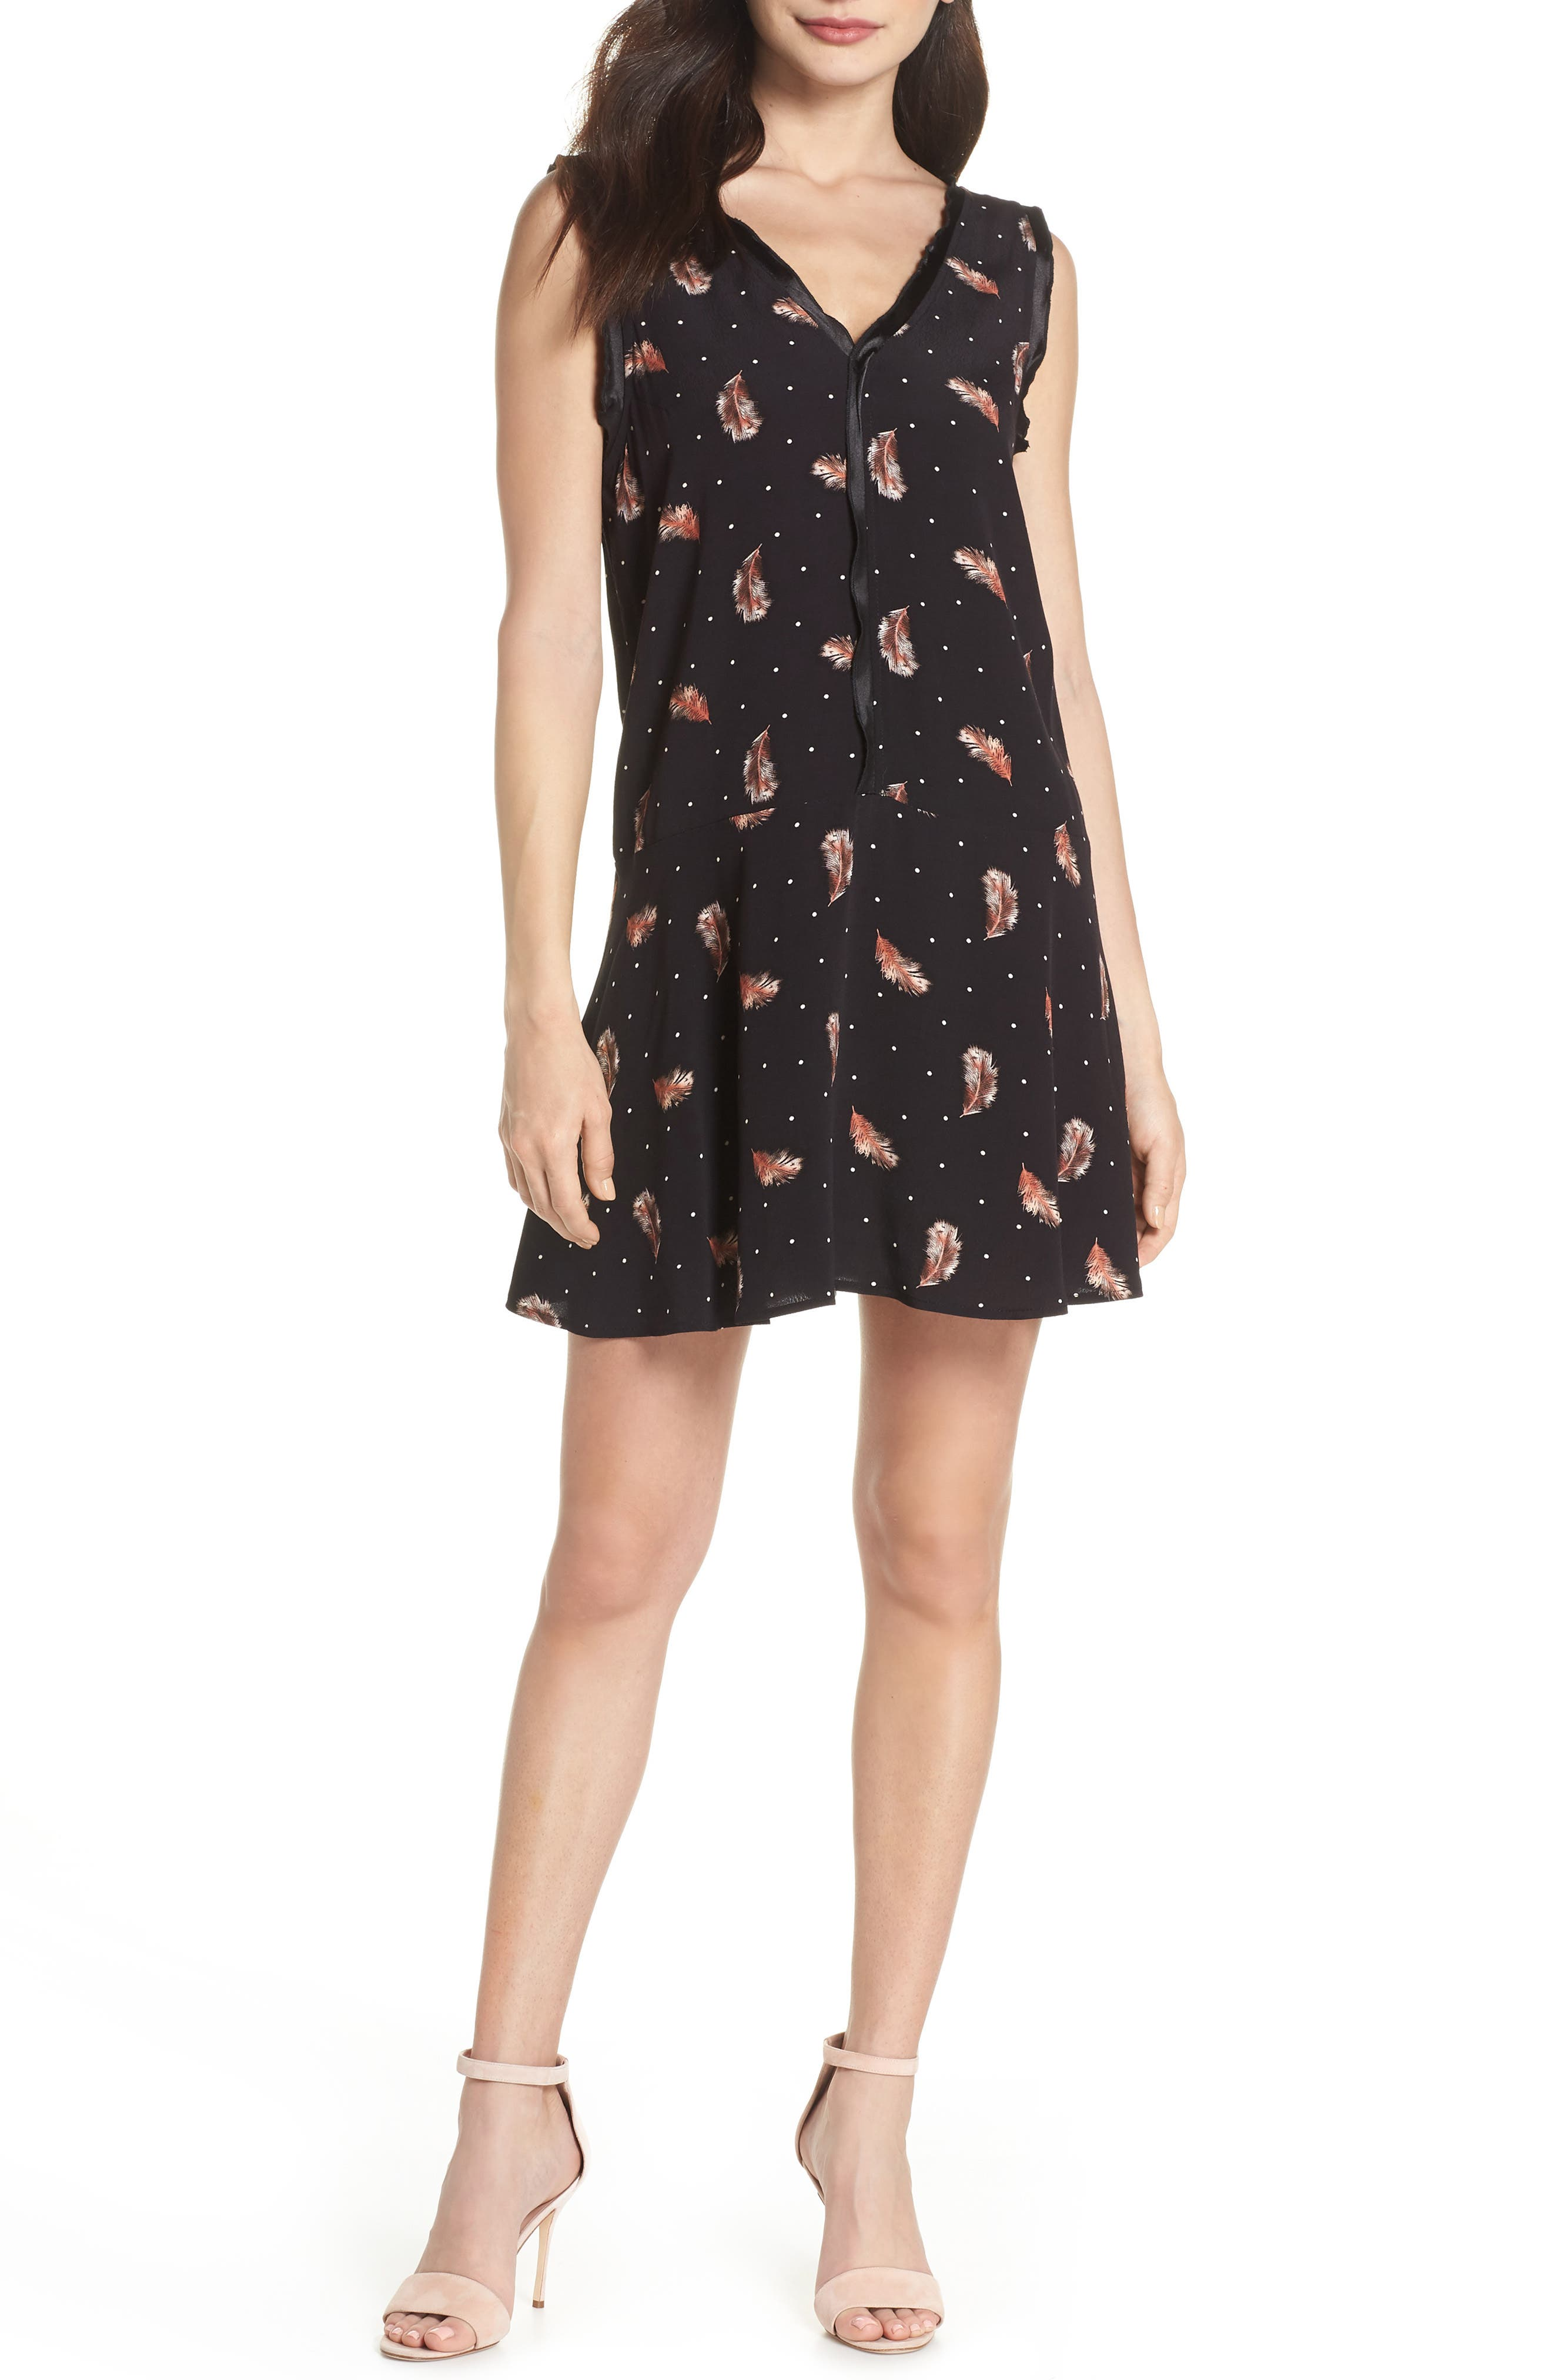 Tuesday Feather Print Dress,                         Main,                         color, Black Feather Dot